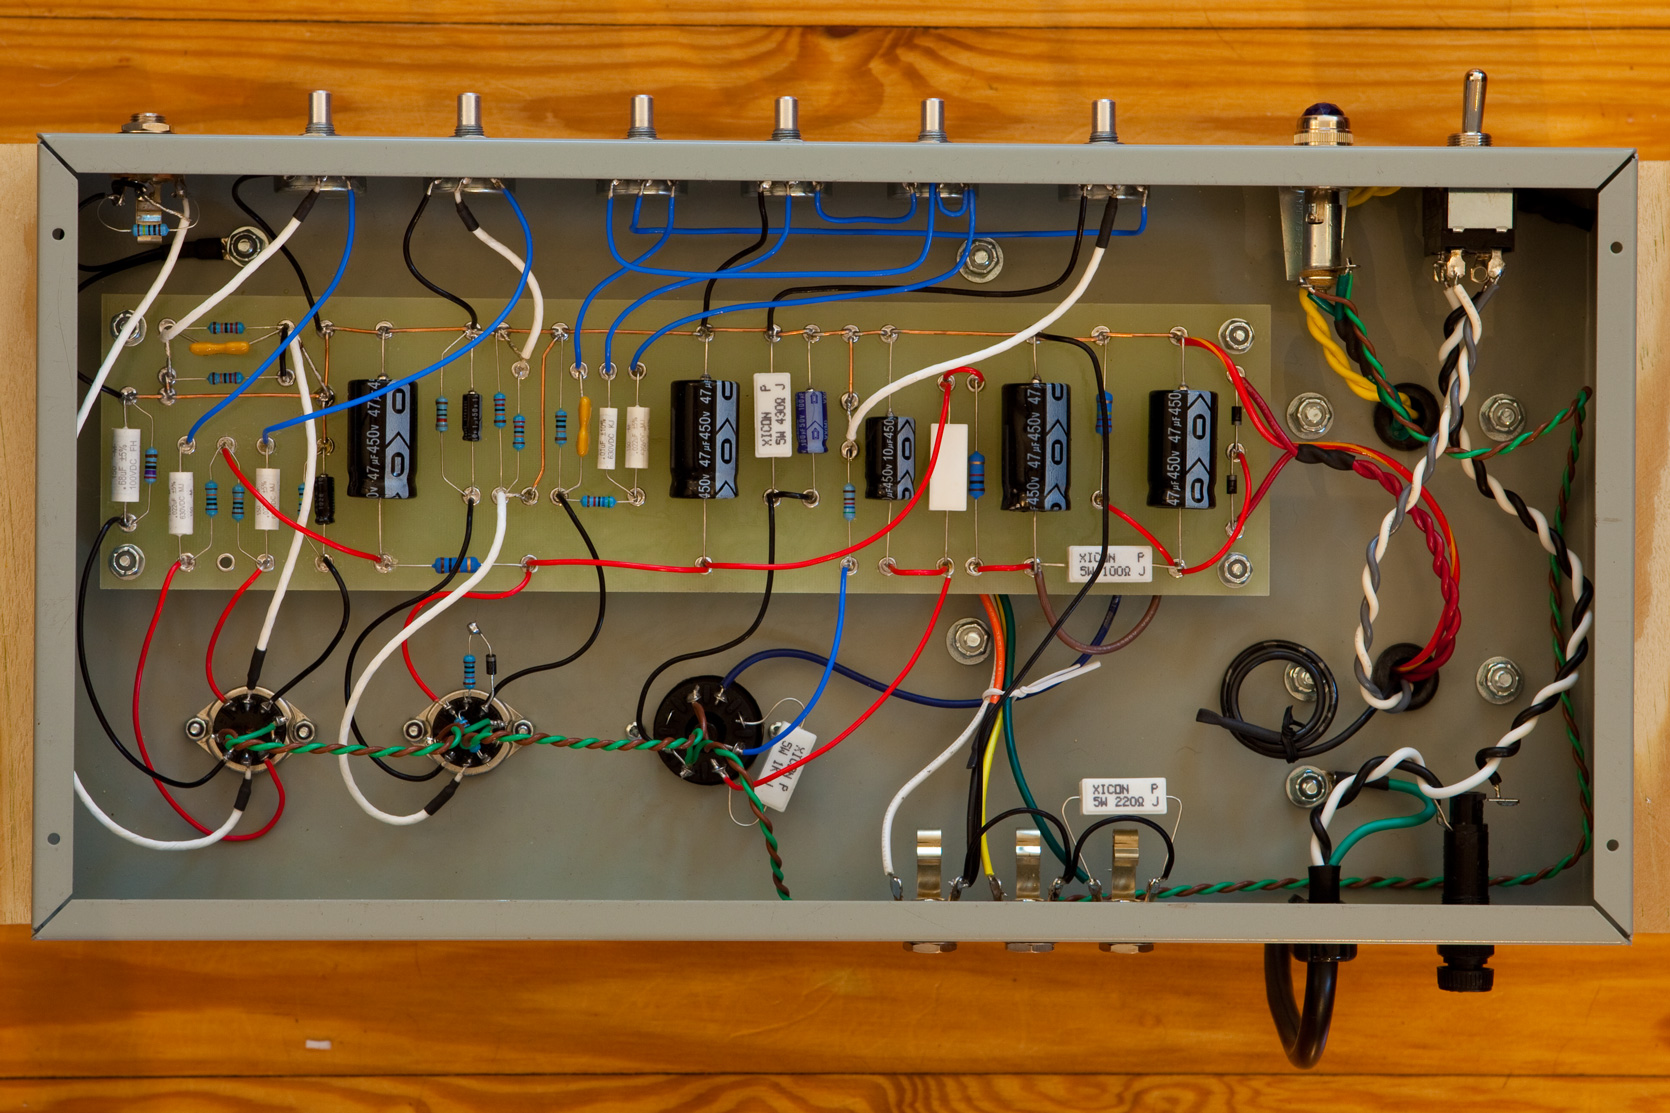 What Does Your Pedalboard Setup Include Cakewalk Forums Peavey Classic 50 Circuit Board Diagram Its Like A Small Patch Bay But You Use Solder Instead Of 1 4 Plugs